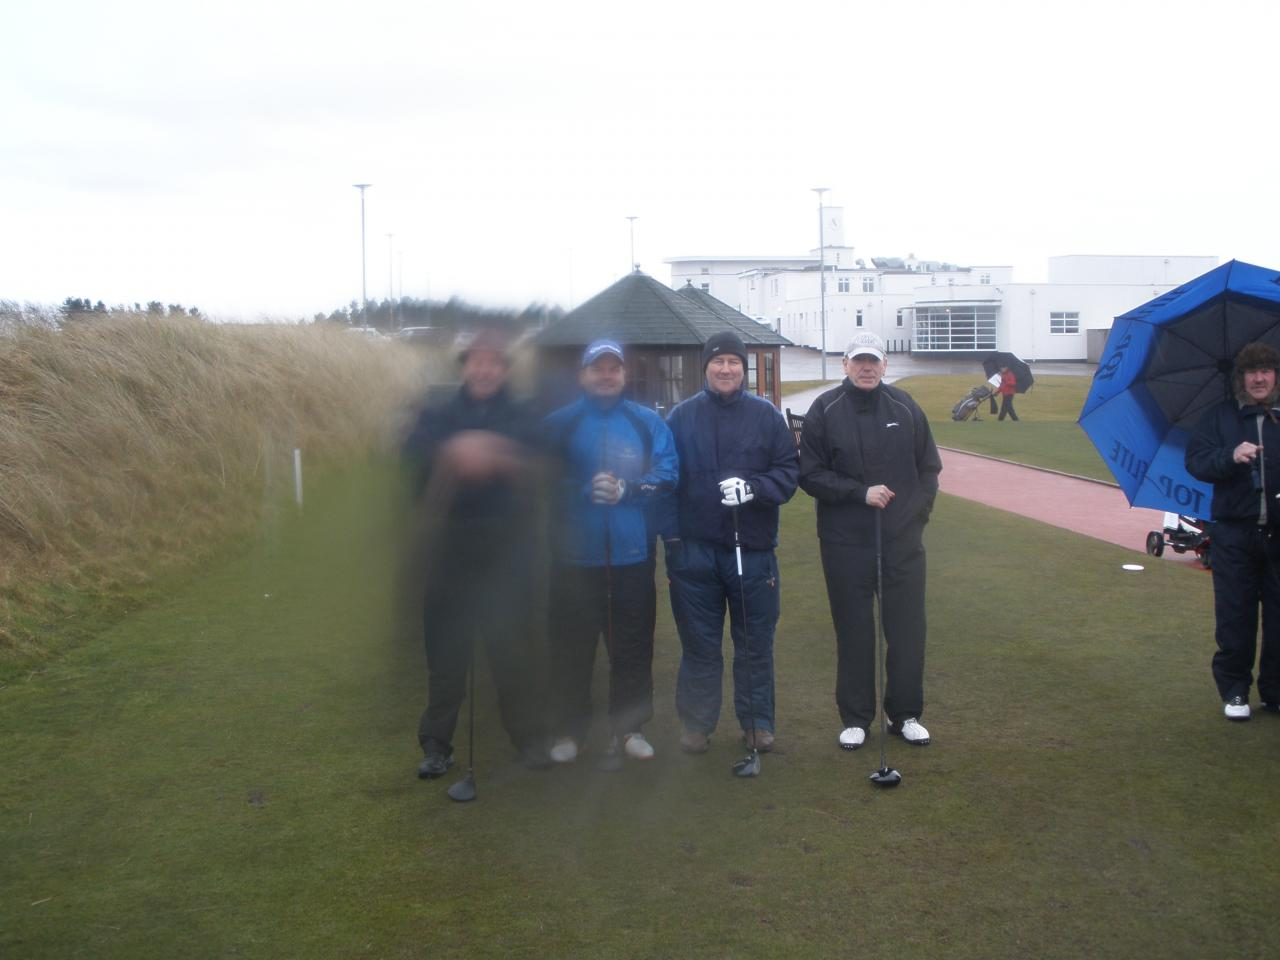 On the 1st tee at Royal Birkdale